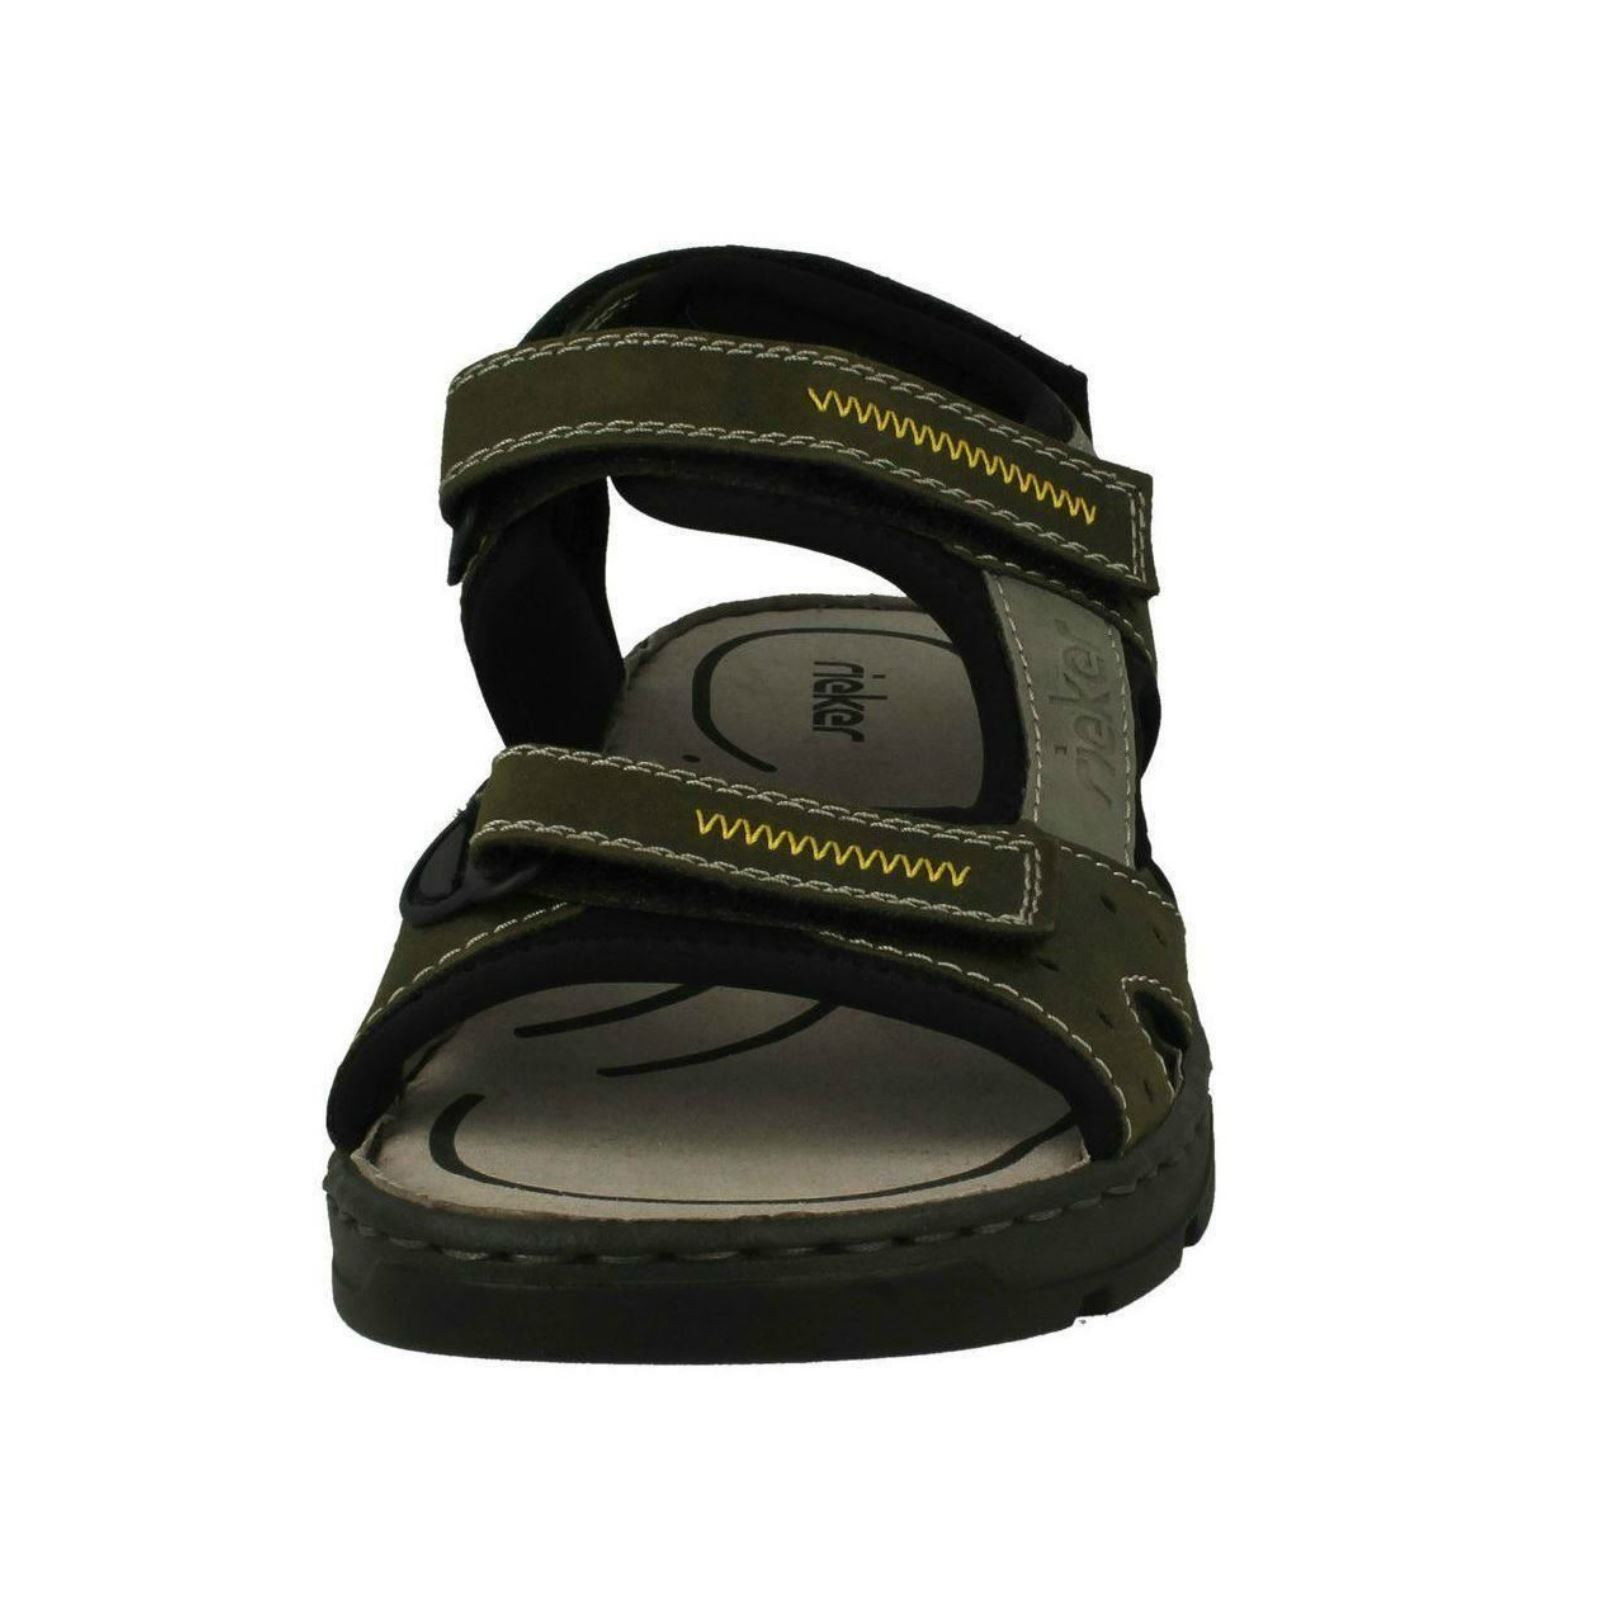 Mens-Rieker-Casual-Strapped-Sandals-26157 thumbnail 3